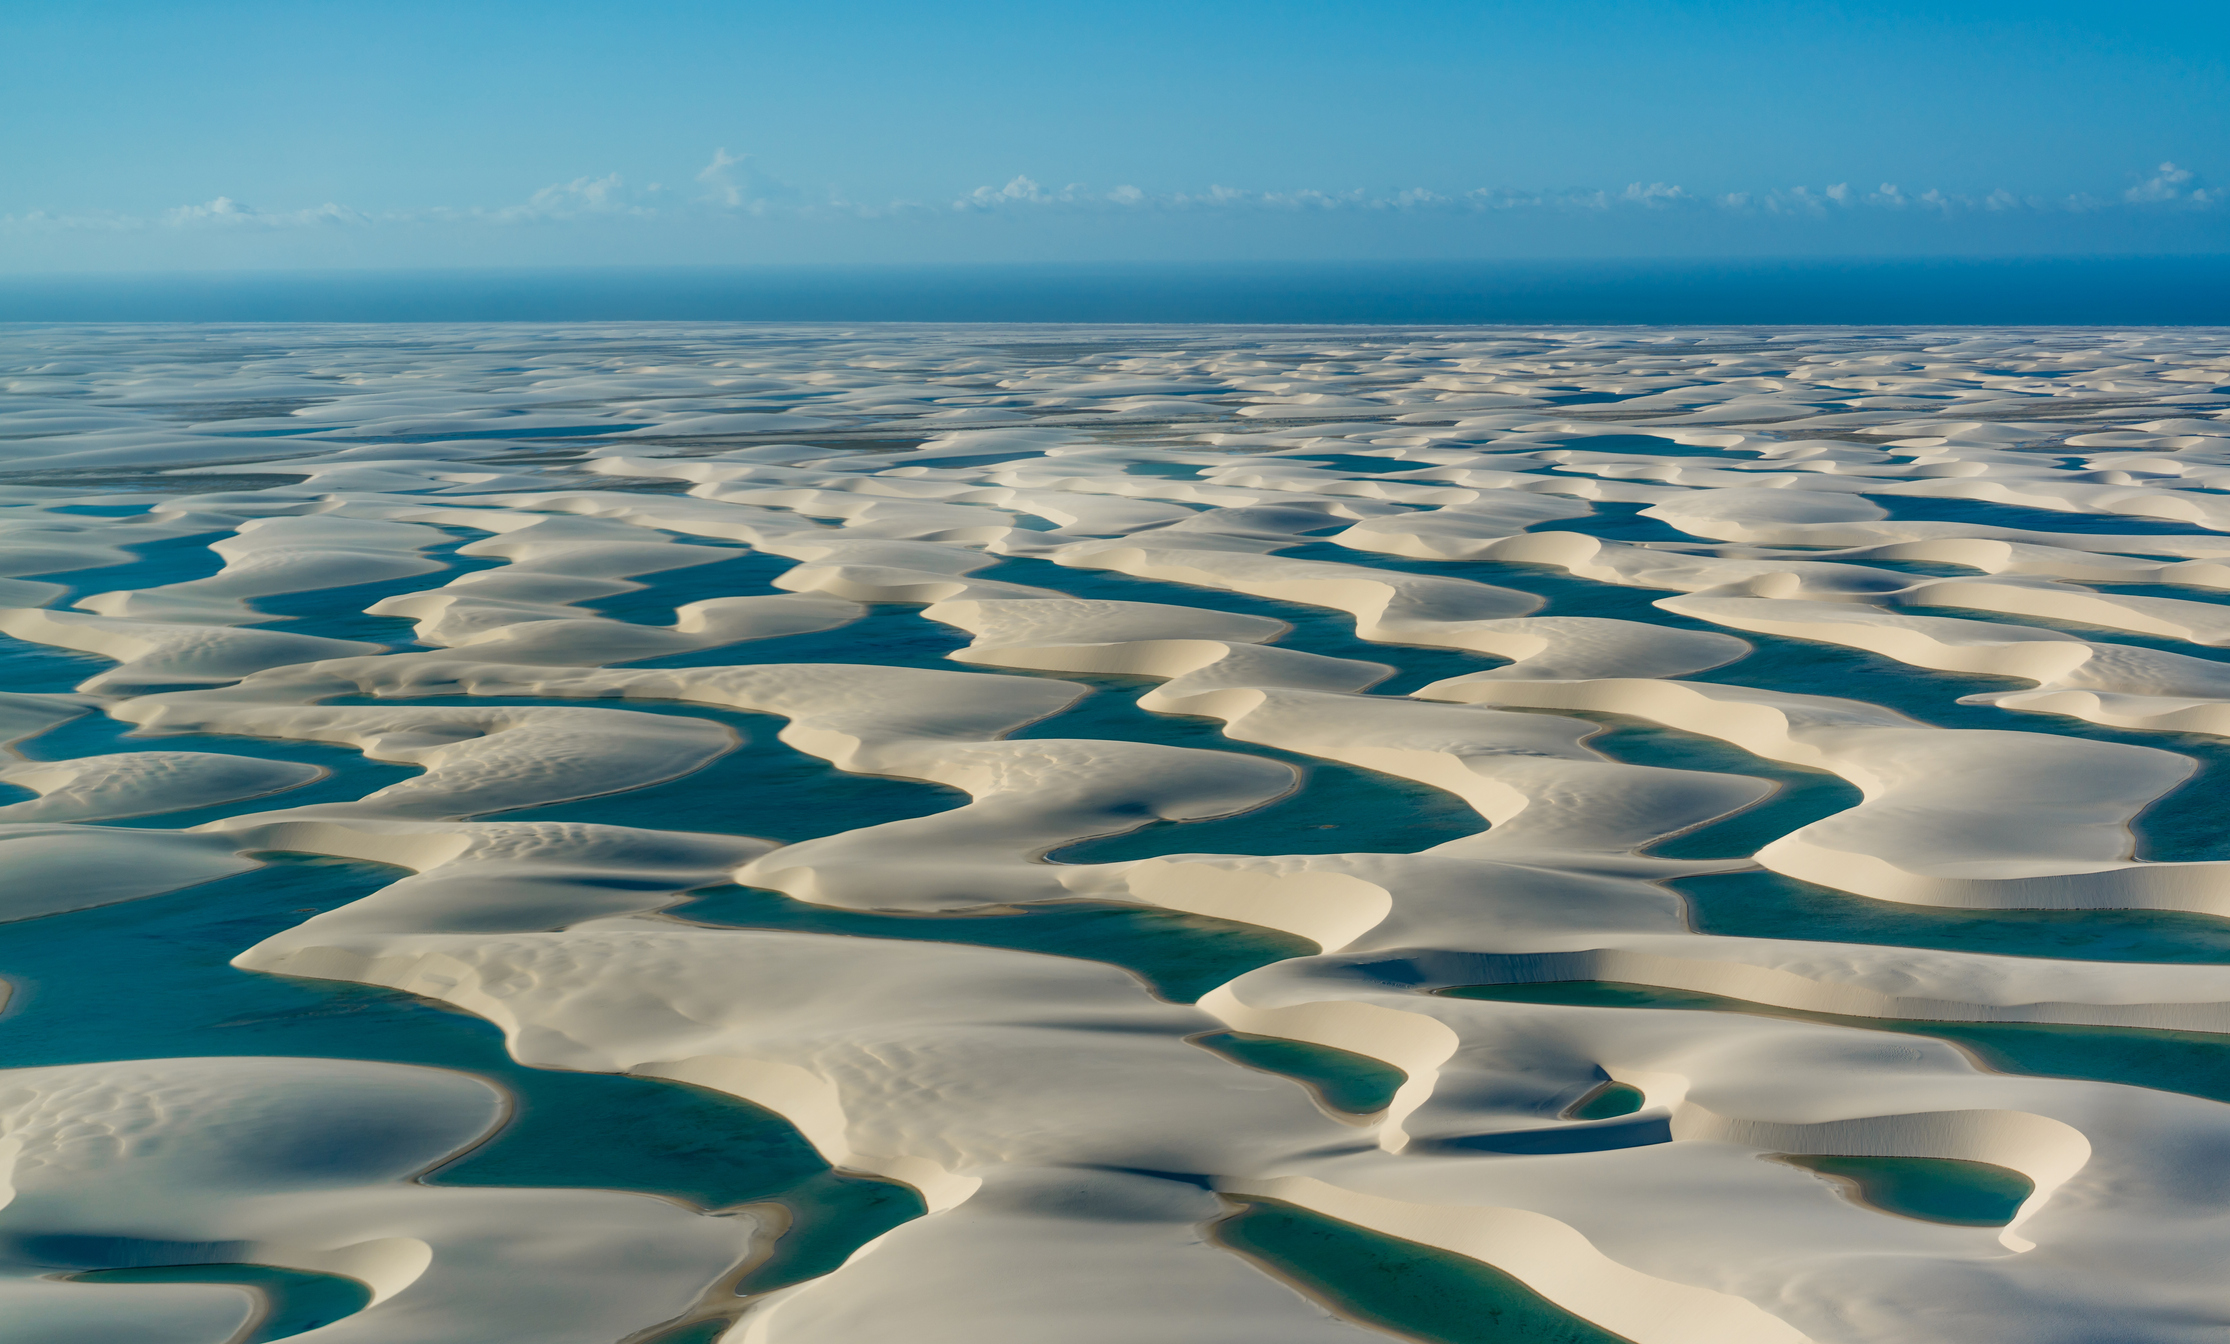 Beautiful sand dunes and lagoons in Brazil - landscape concepts